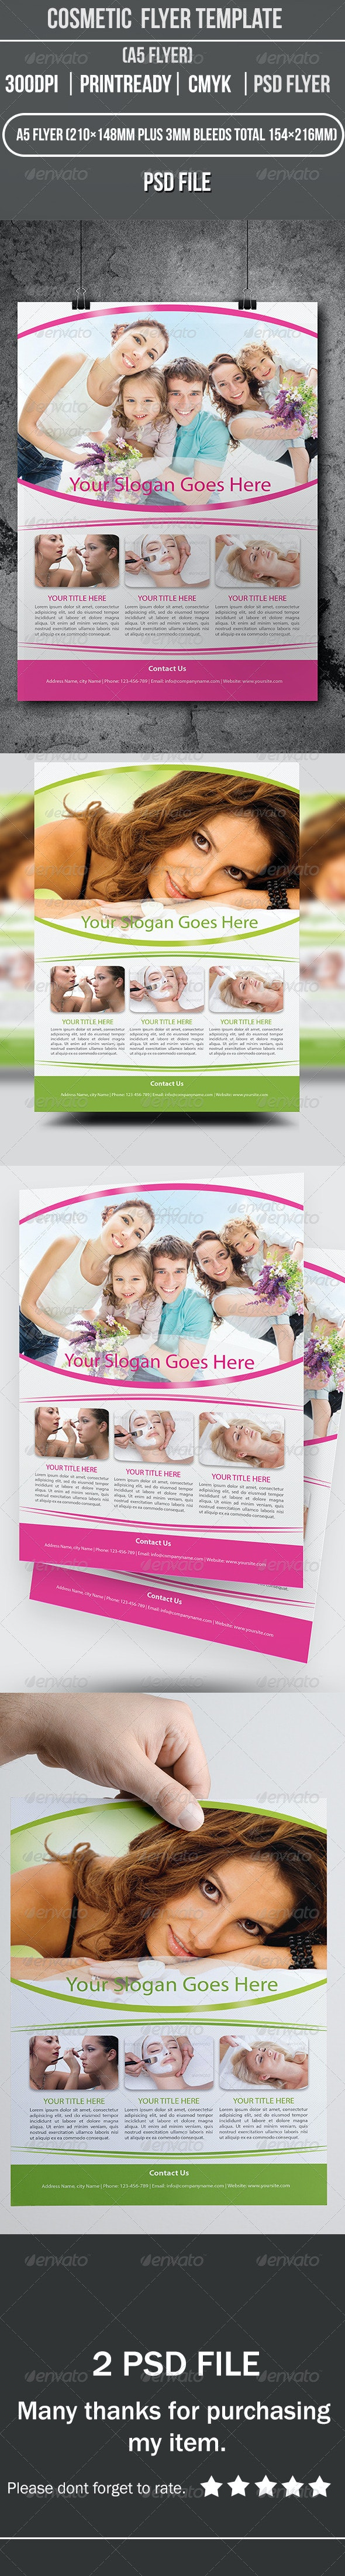 Cosmetic  Flyer Template - Commerce Flyers